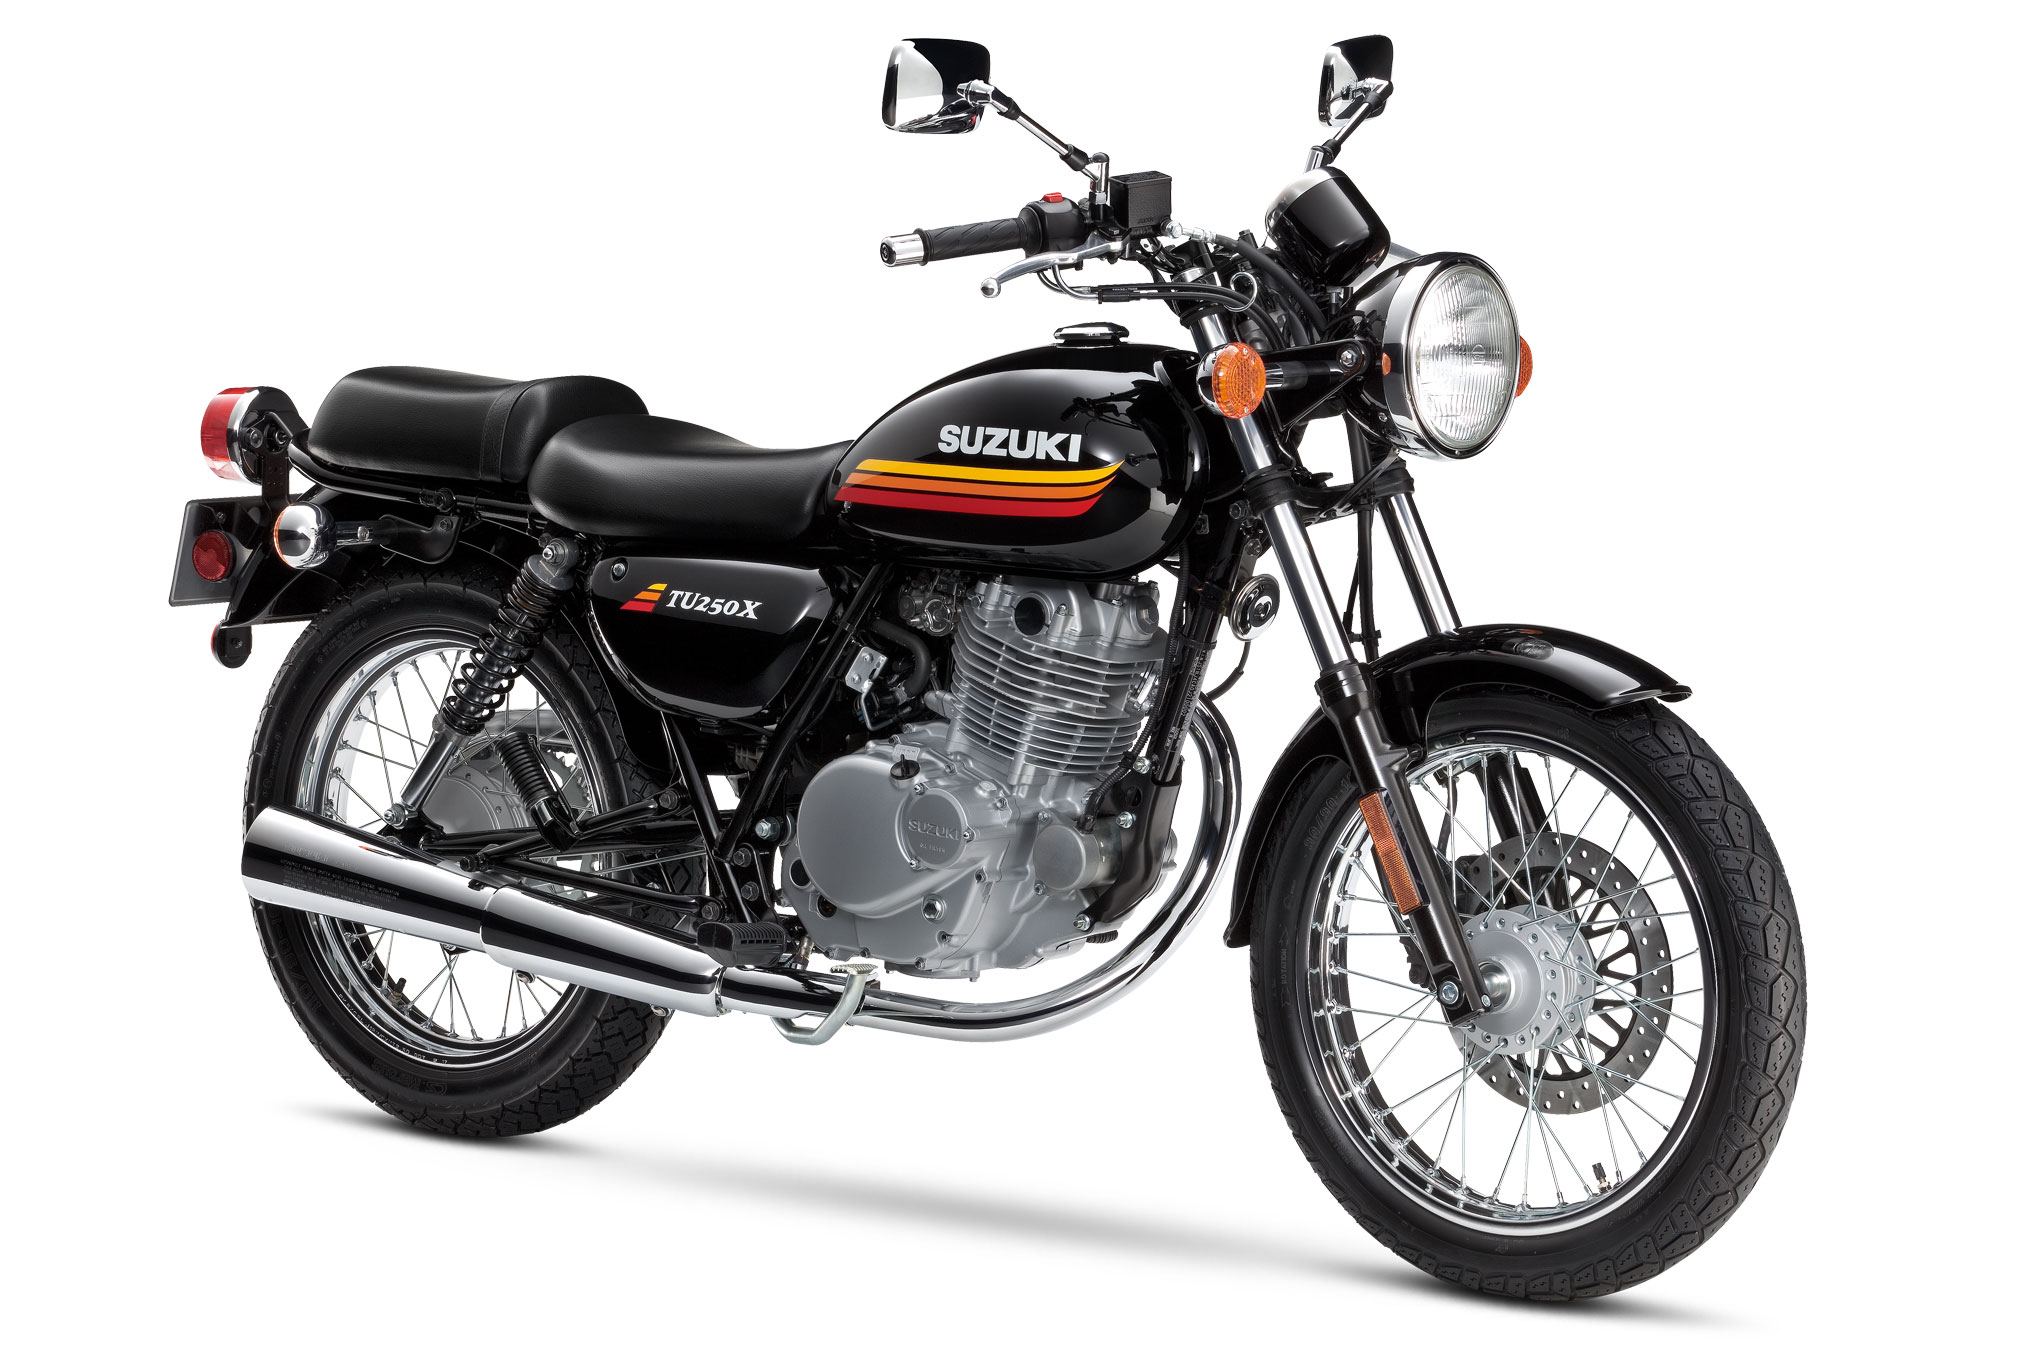 2019 Suzuki TU250X Guide • Total Motorcycle